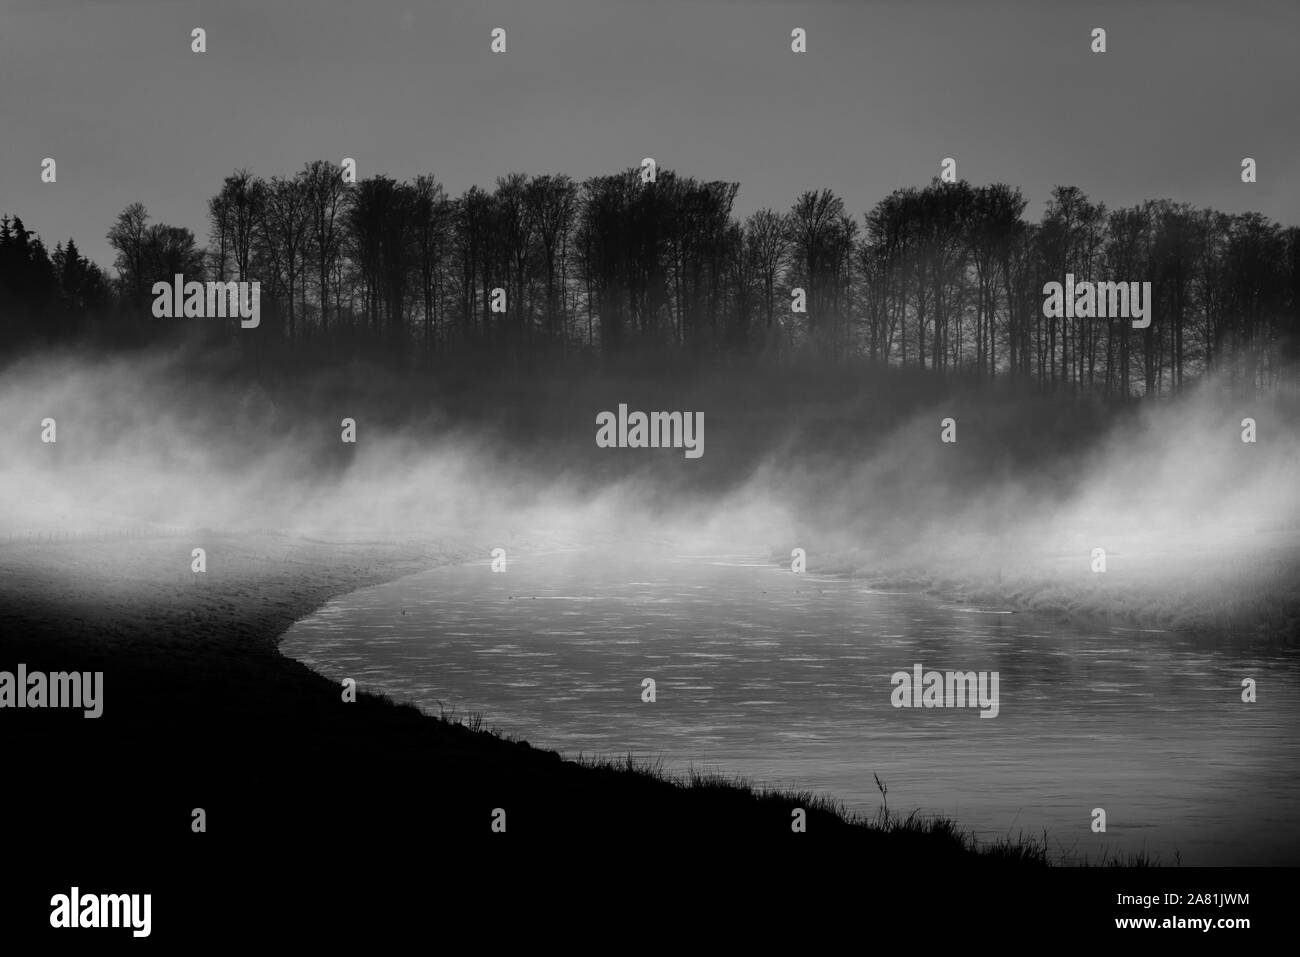 Foggy landscape, near Oberweser, Weser Uplands, Weserbergland, Hesse, Germany; Stock Photo